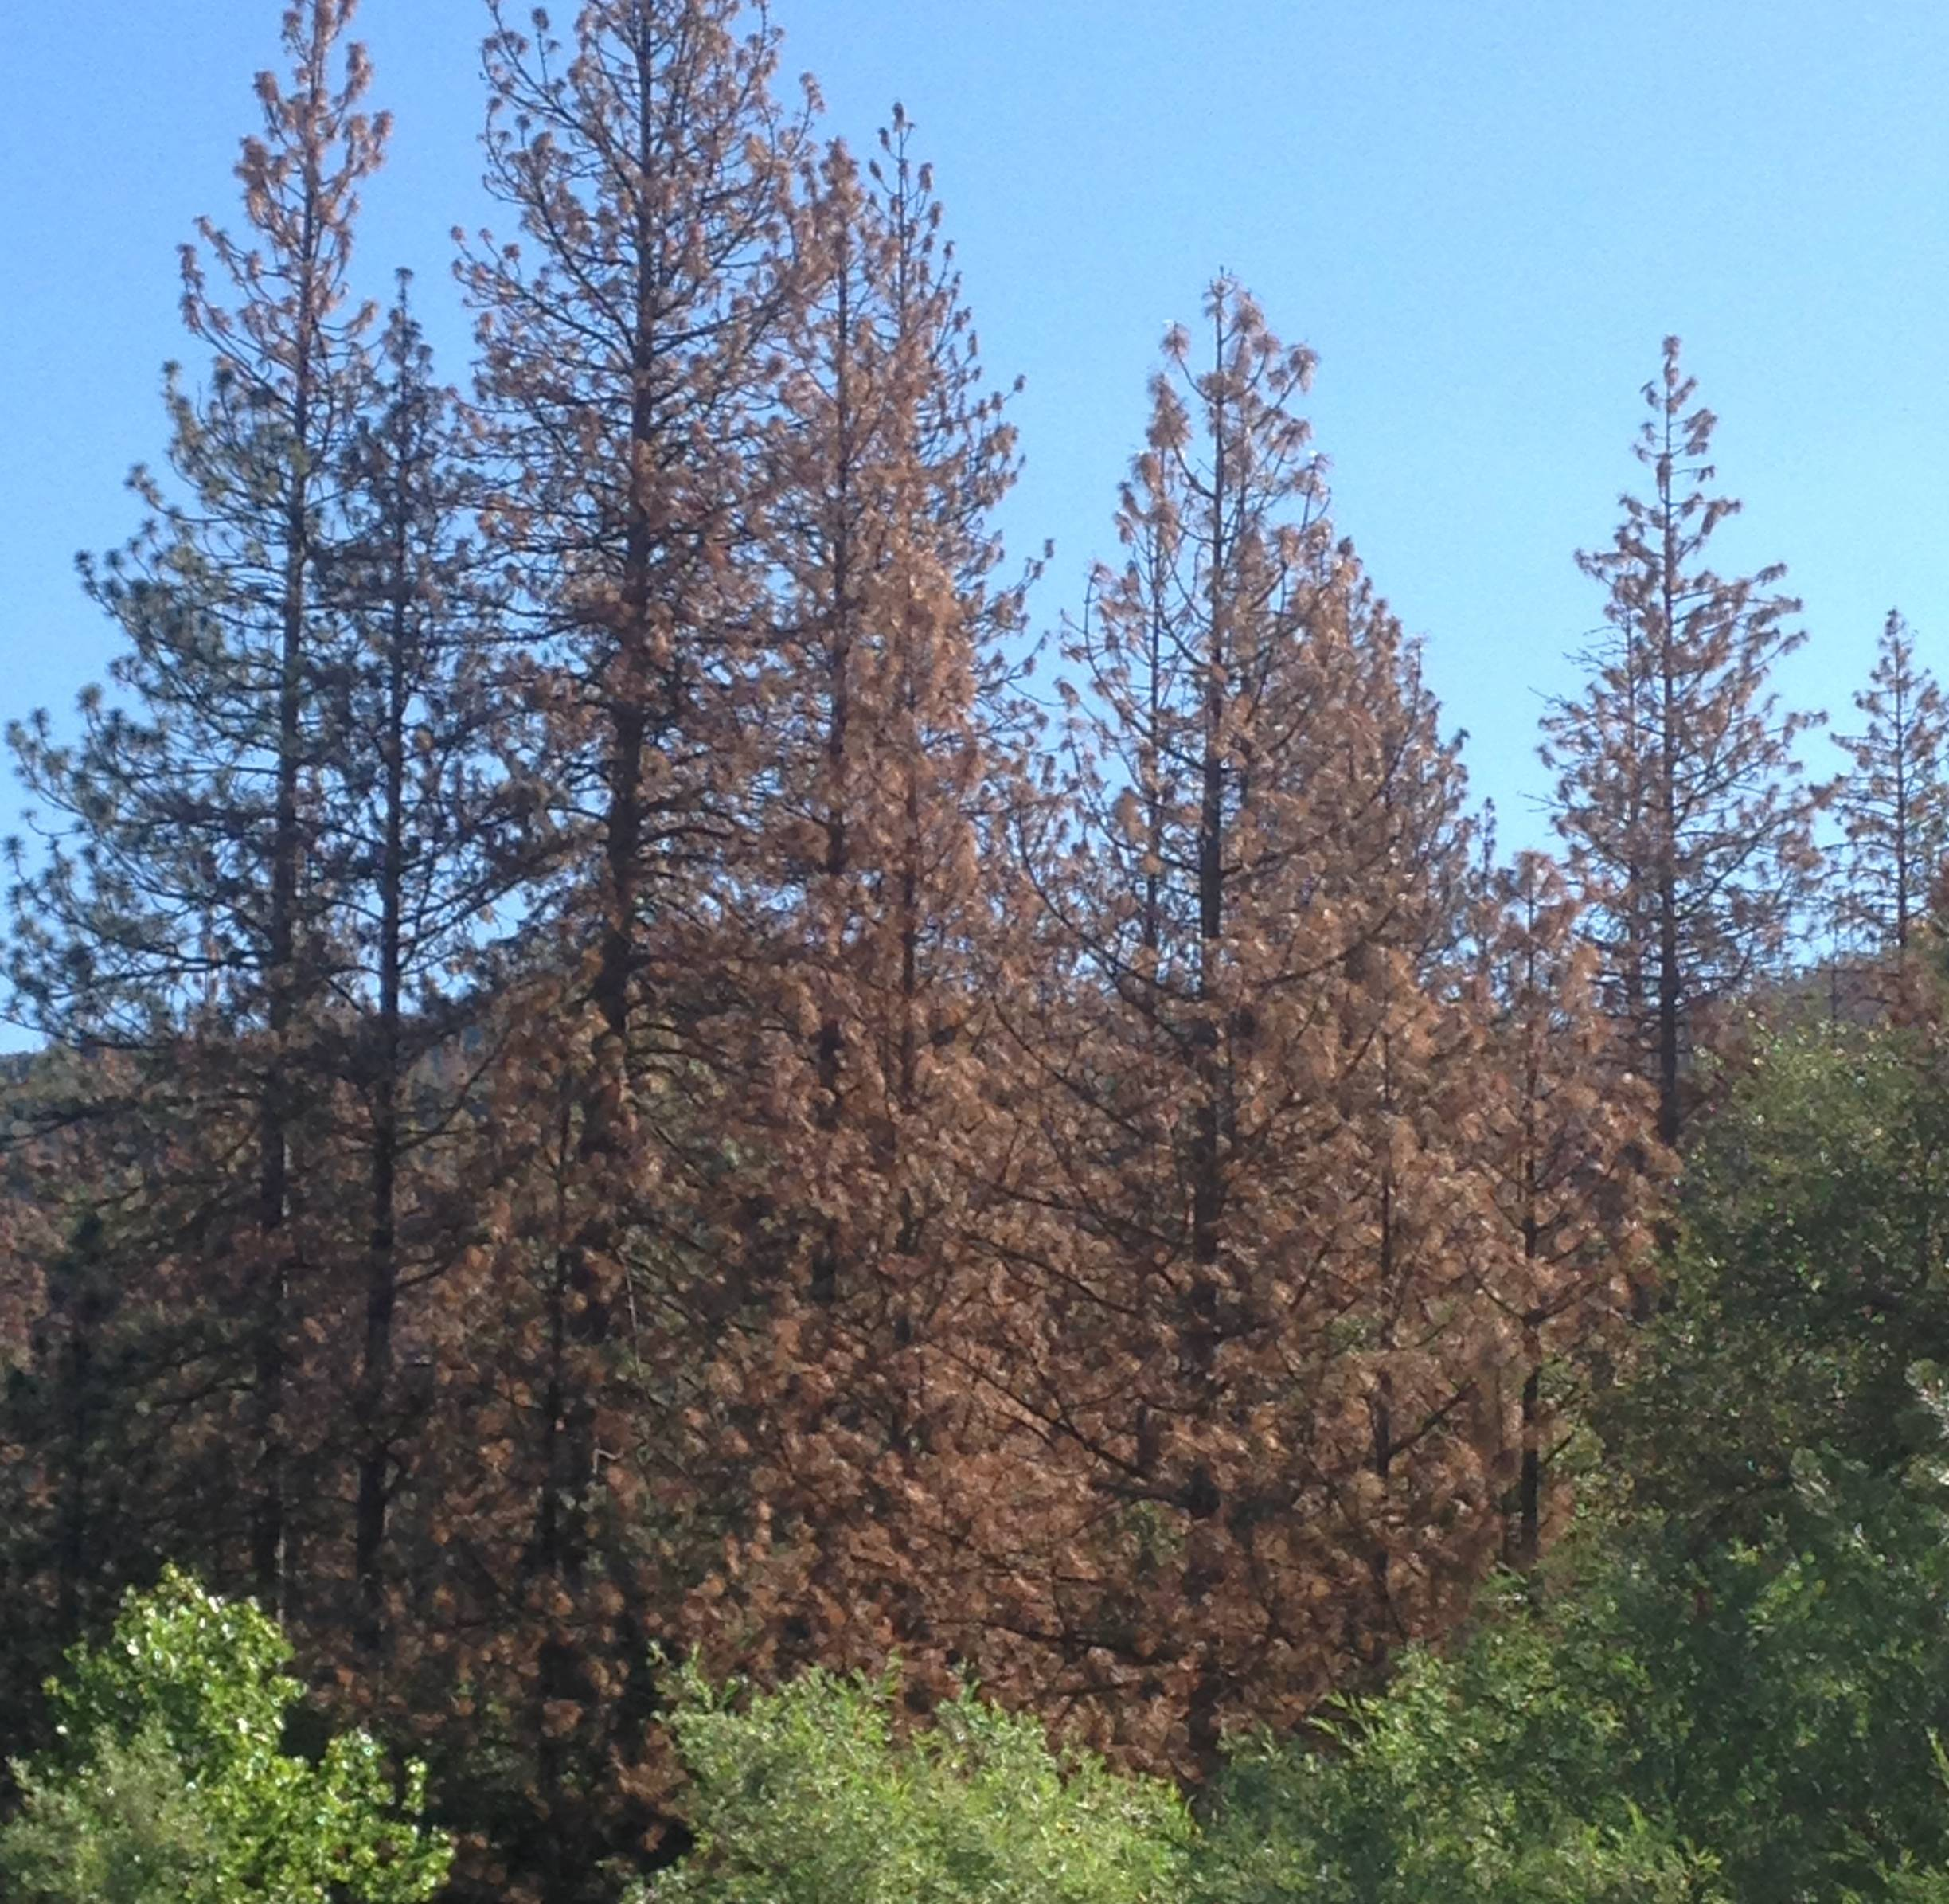 These Ponderosa pines in the Sierra Nevada are a few of the 29 million trees in California's forests left dead after more than four years of unprecedented drought.